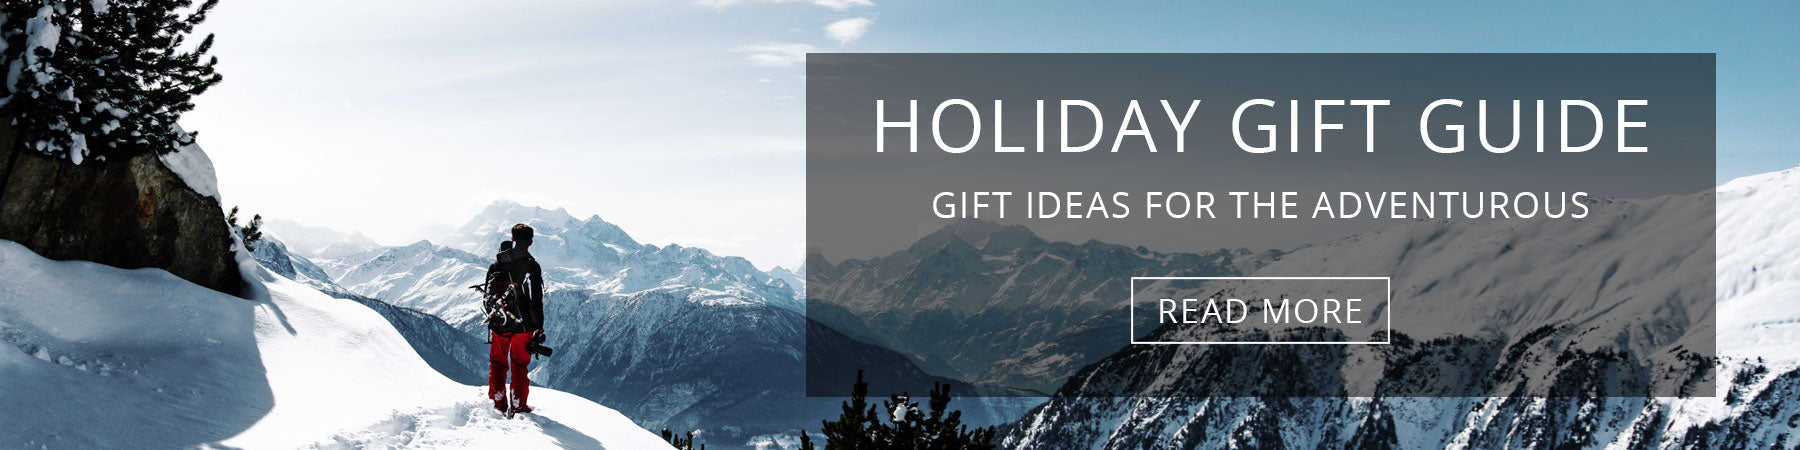 Holiday Gift Guide for the Adventurous